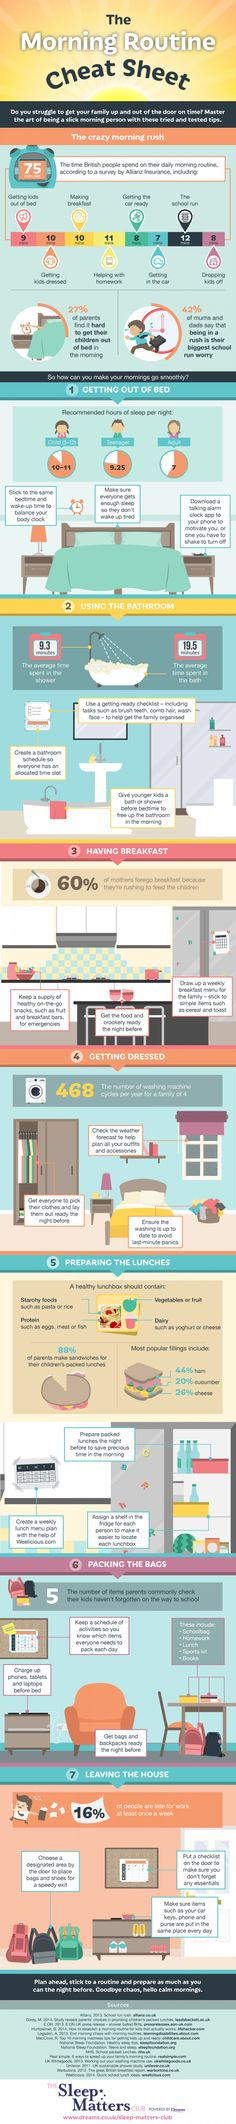 The Morning Routine Cheat Sheet  Infographic